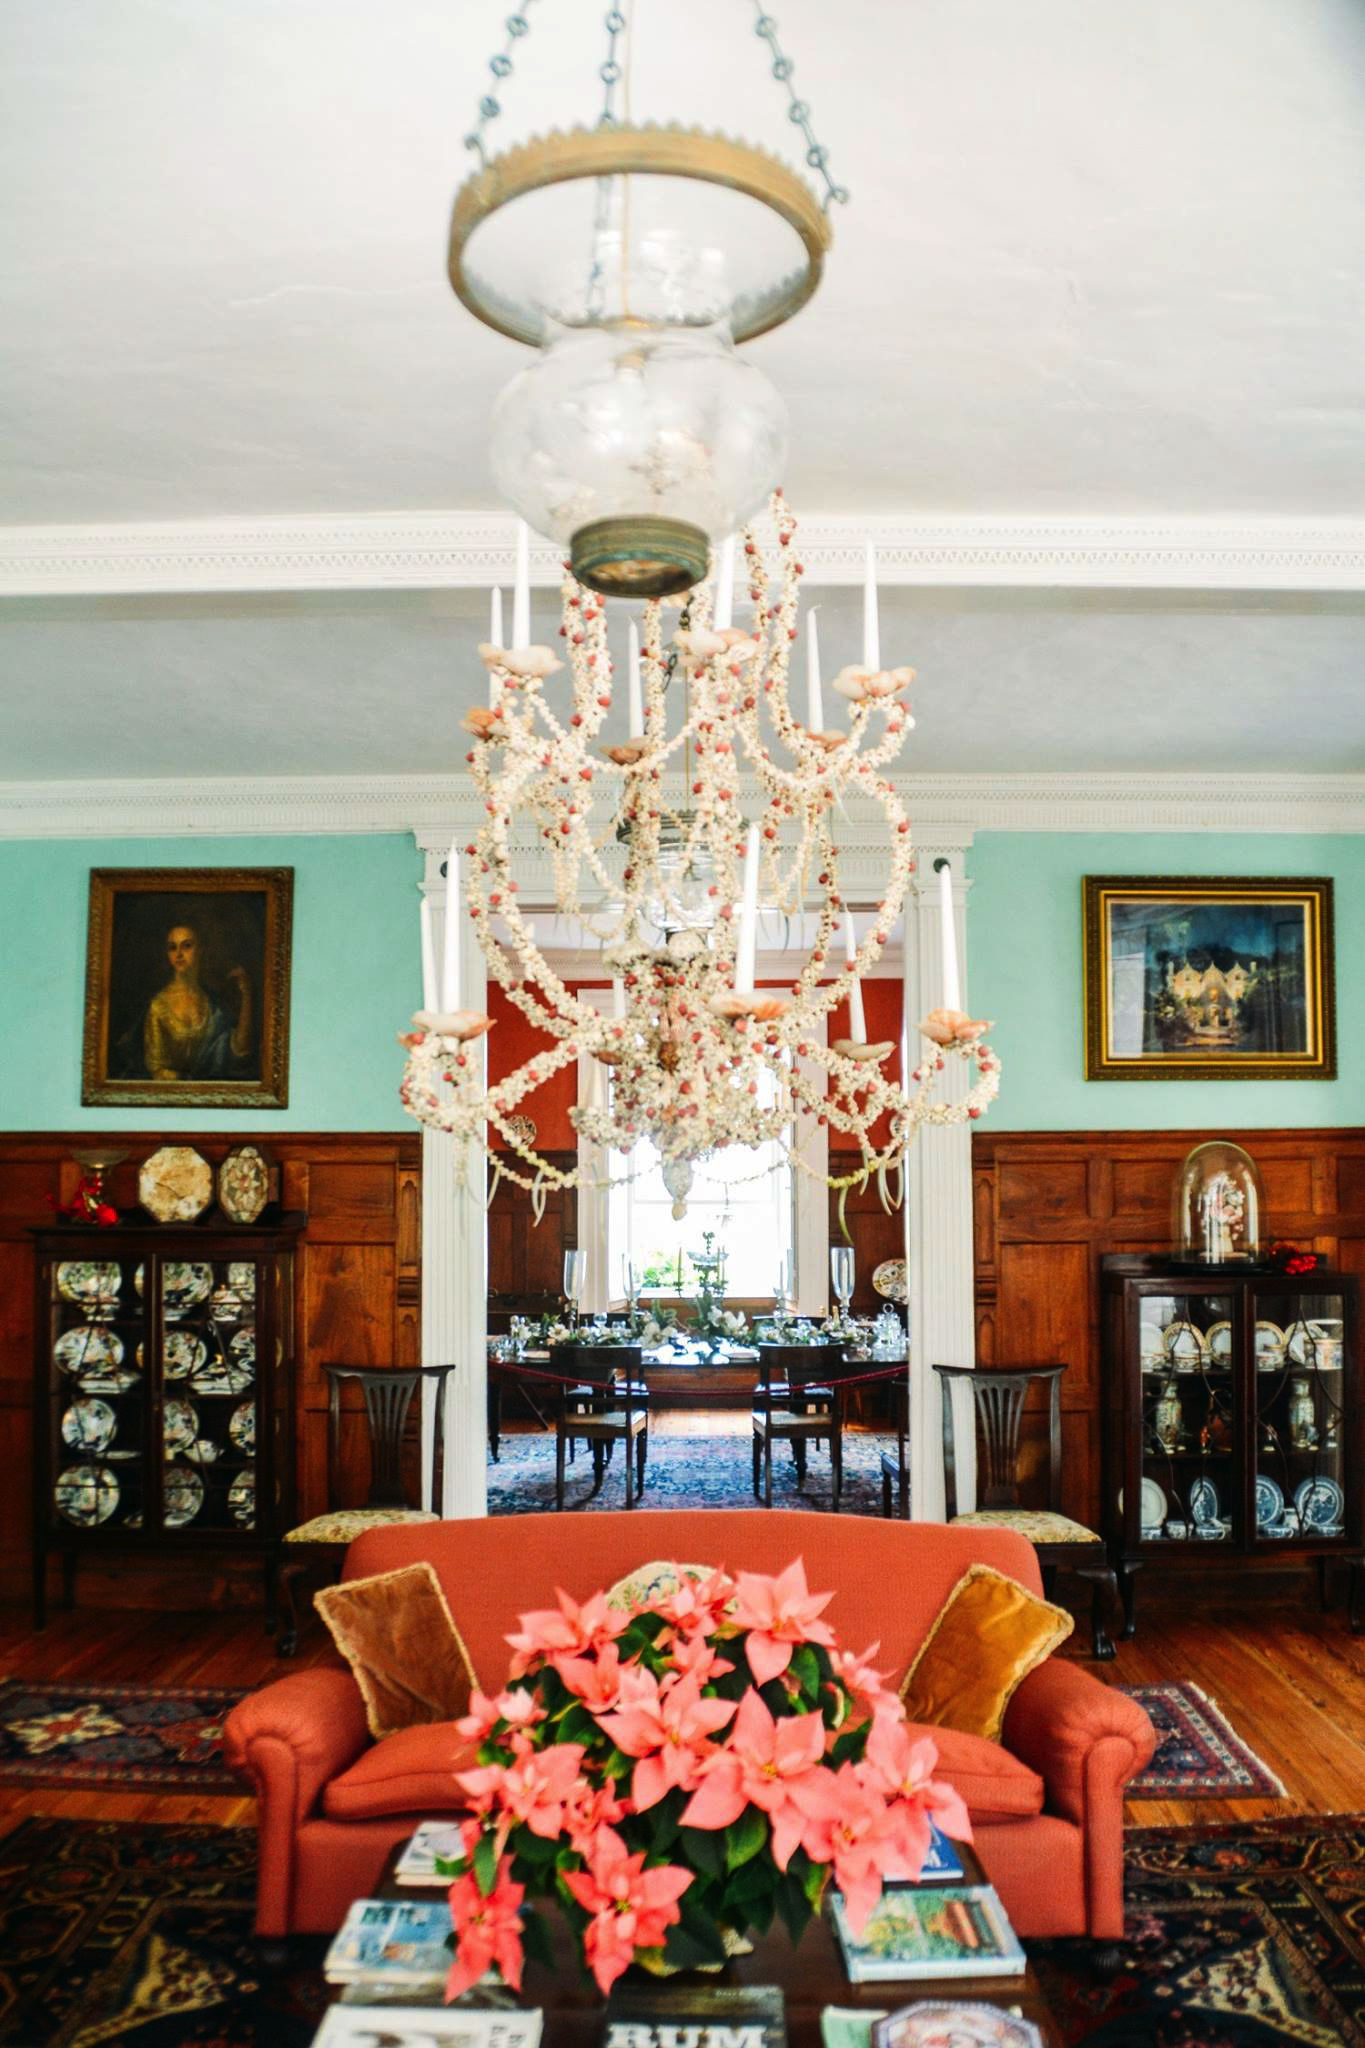 Exploring The Picturesque St. Nicholas Abbey In Barbados (3)